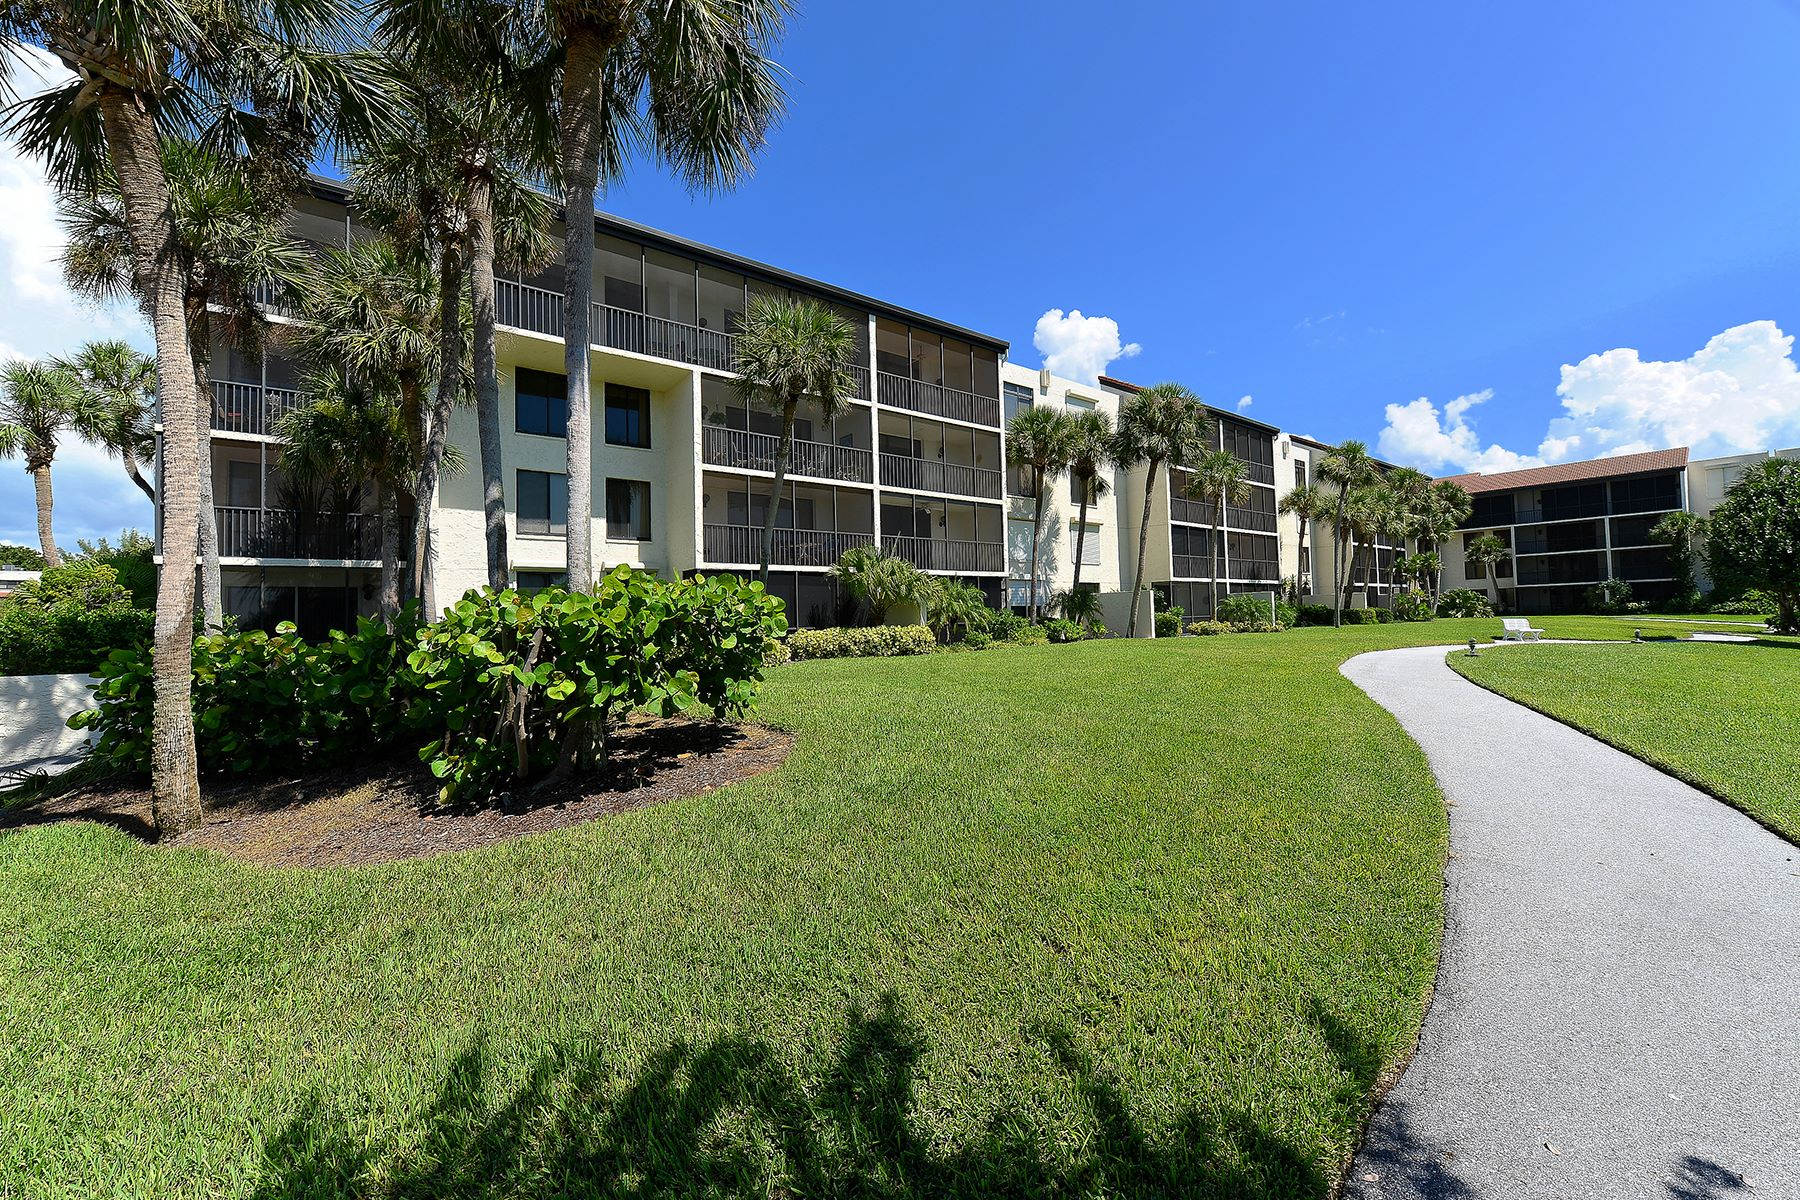 Condominium for Sale at SEAPLACE 1975 Gulf Of Mexico Dr G4-404 Longboat Key, Florida, 34228 United States